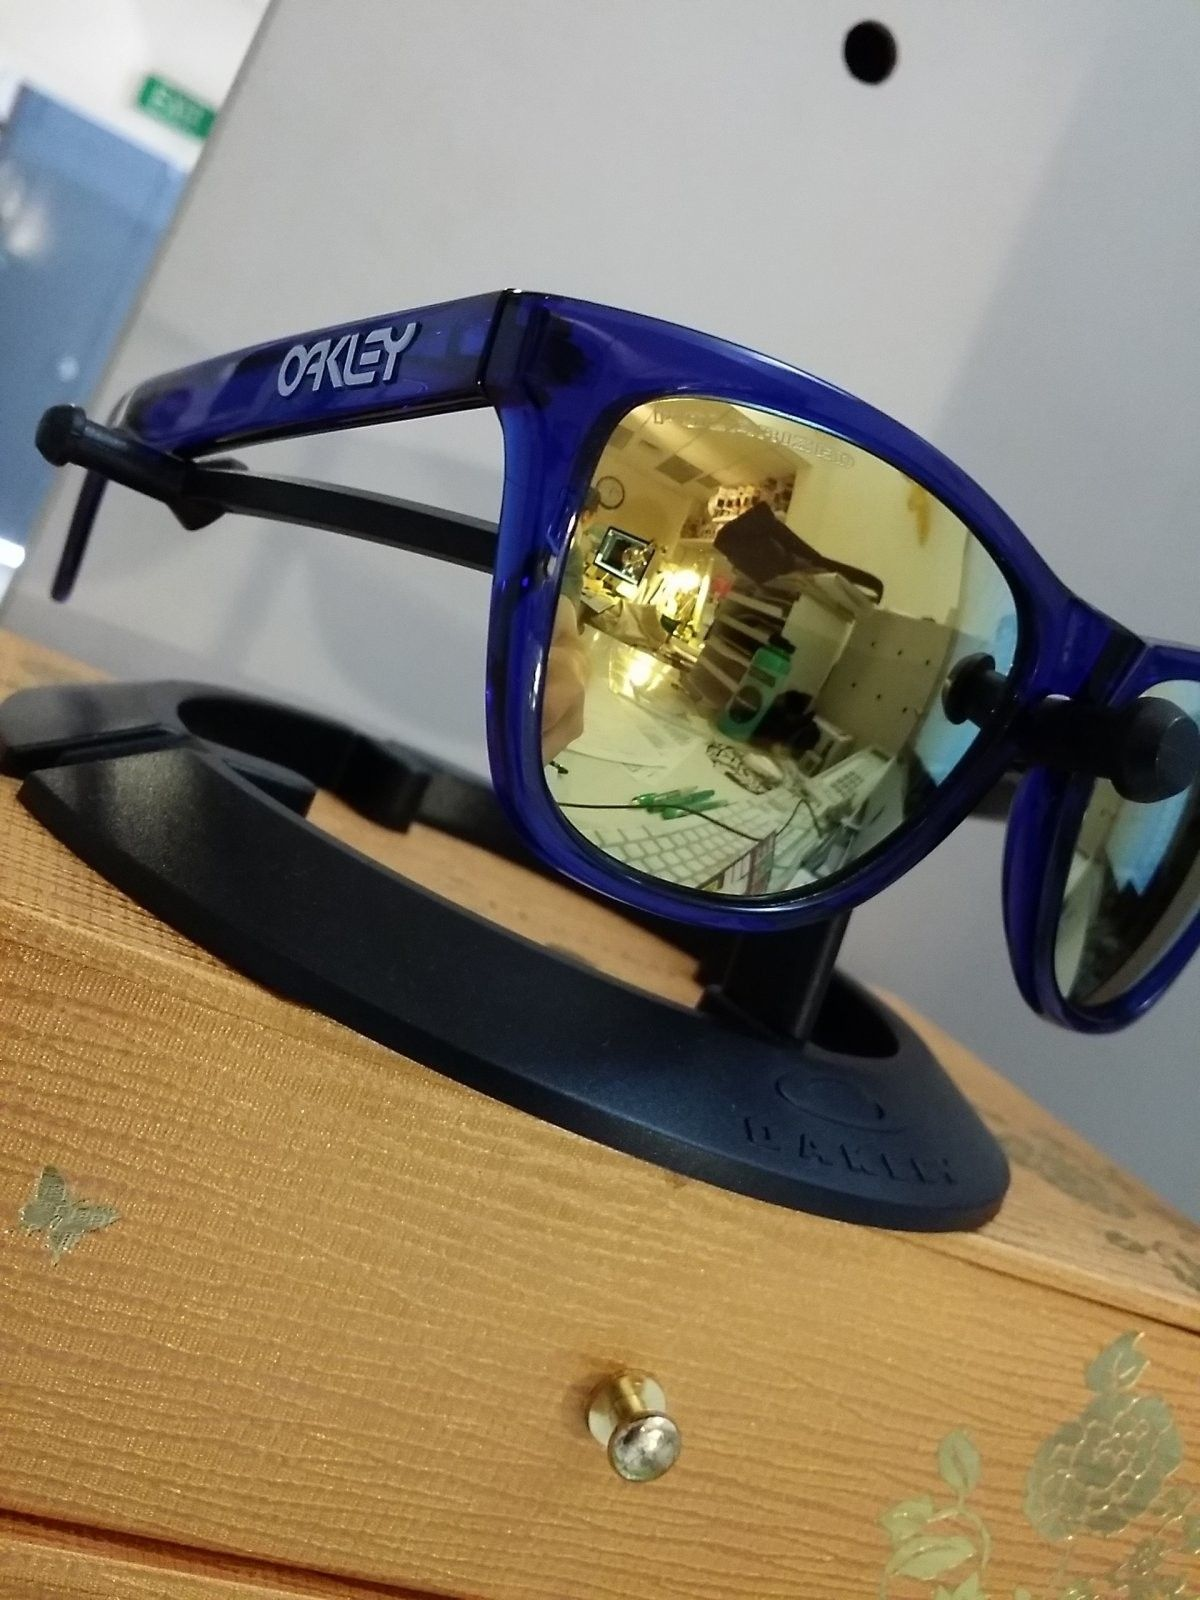 Jetty Surf(Crystal Blue) With Polarized 24k Lenses, Looking For RootBeer Cyan Fade MIB - IMG_20140404_112136.jpg